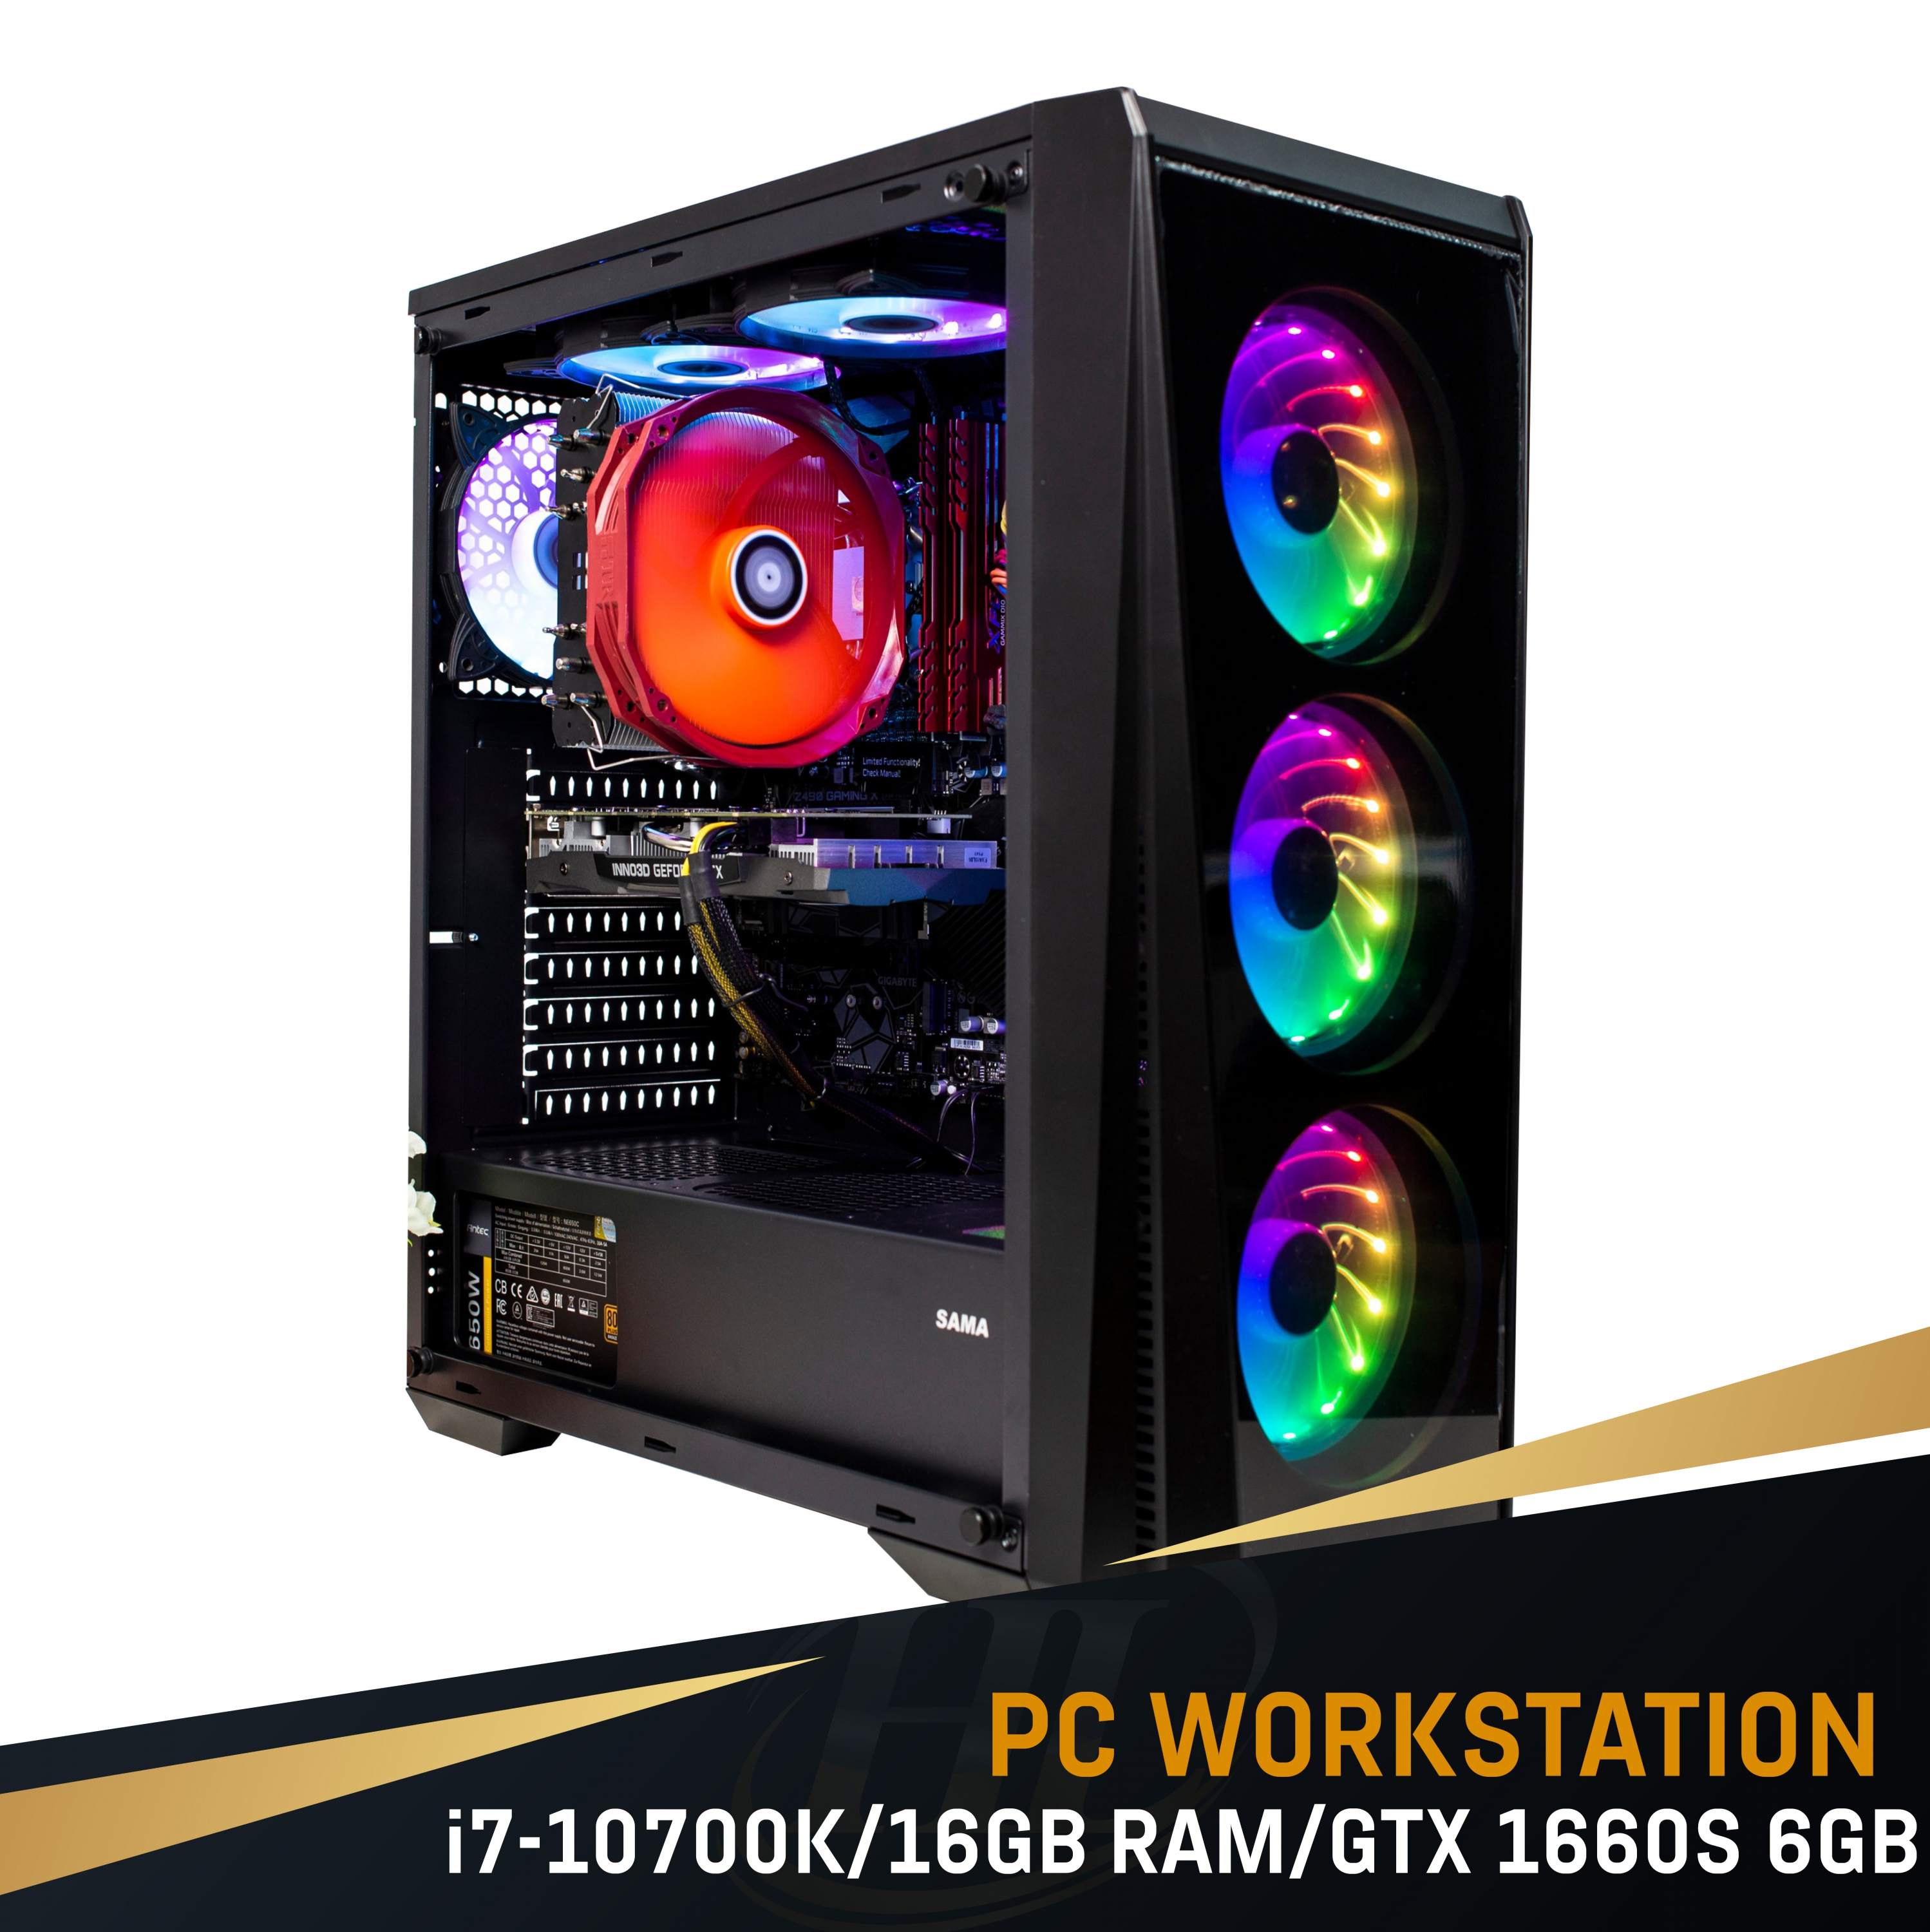 PC Intel i7 10700K/16GB Ram / VGA GTX 1660 Super 6GB